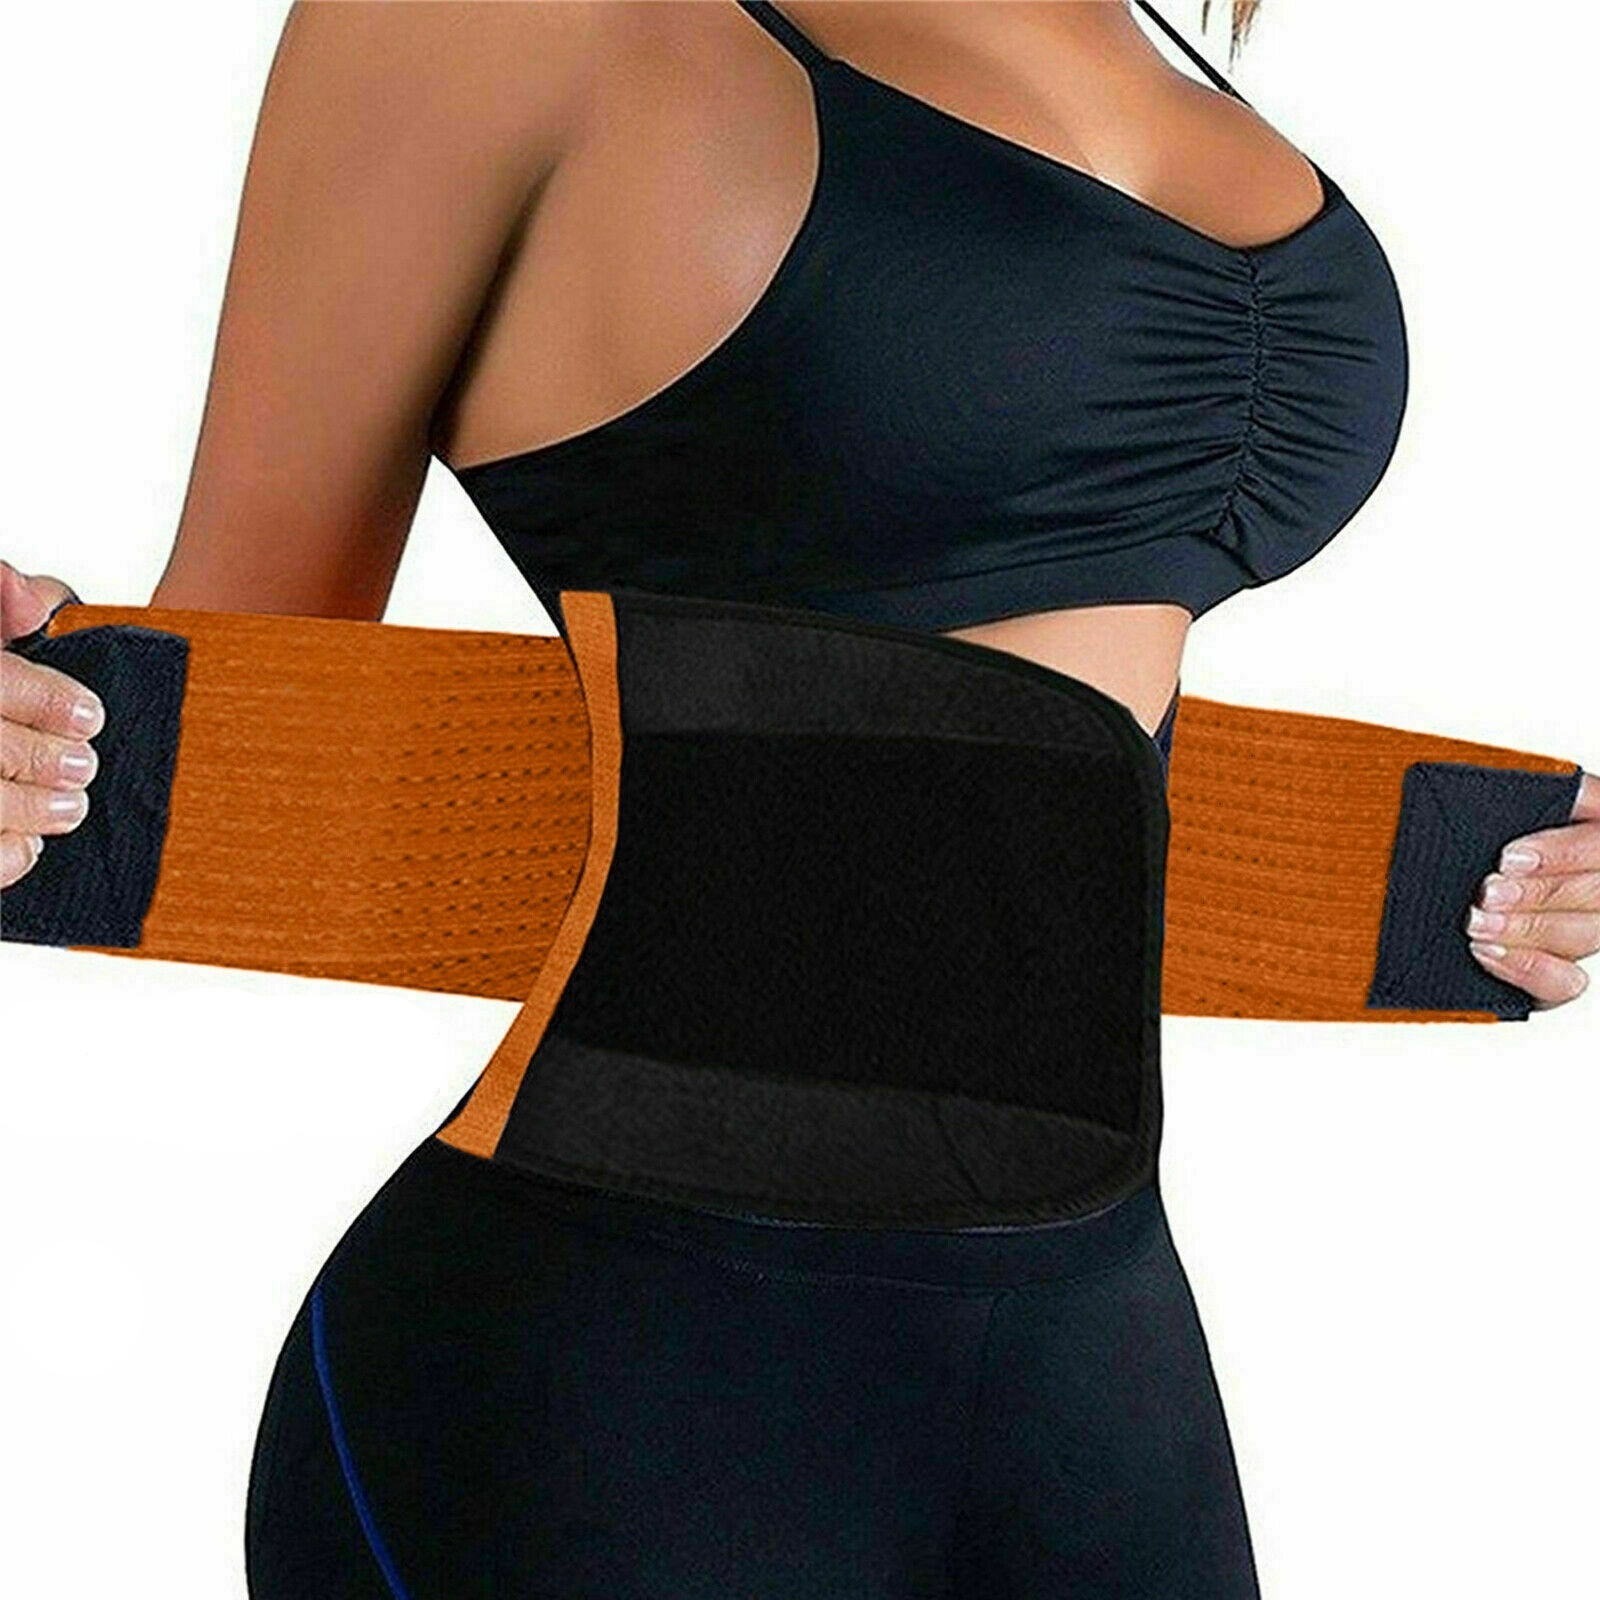 HOT Slimming Belt Power Slimming Belt Body Shaper Waist Trainer Trimmer Sport Gym Sweating Fat Burning Slim S-2XL